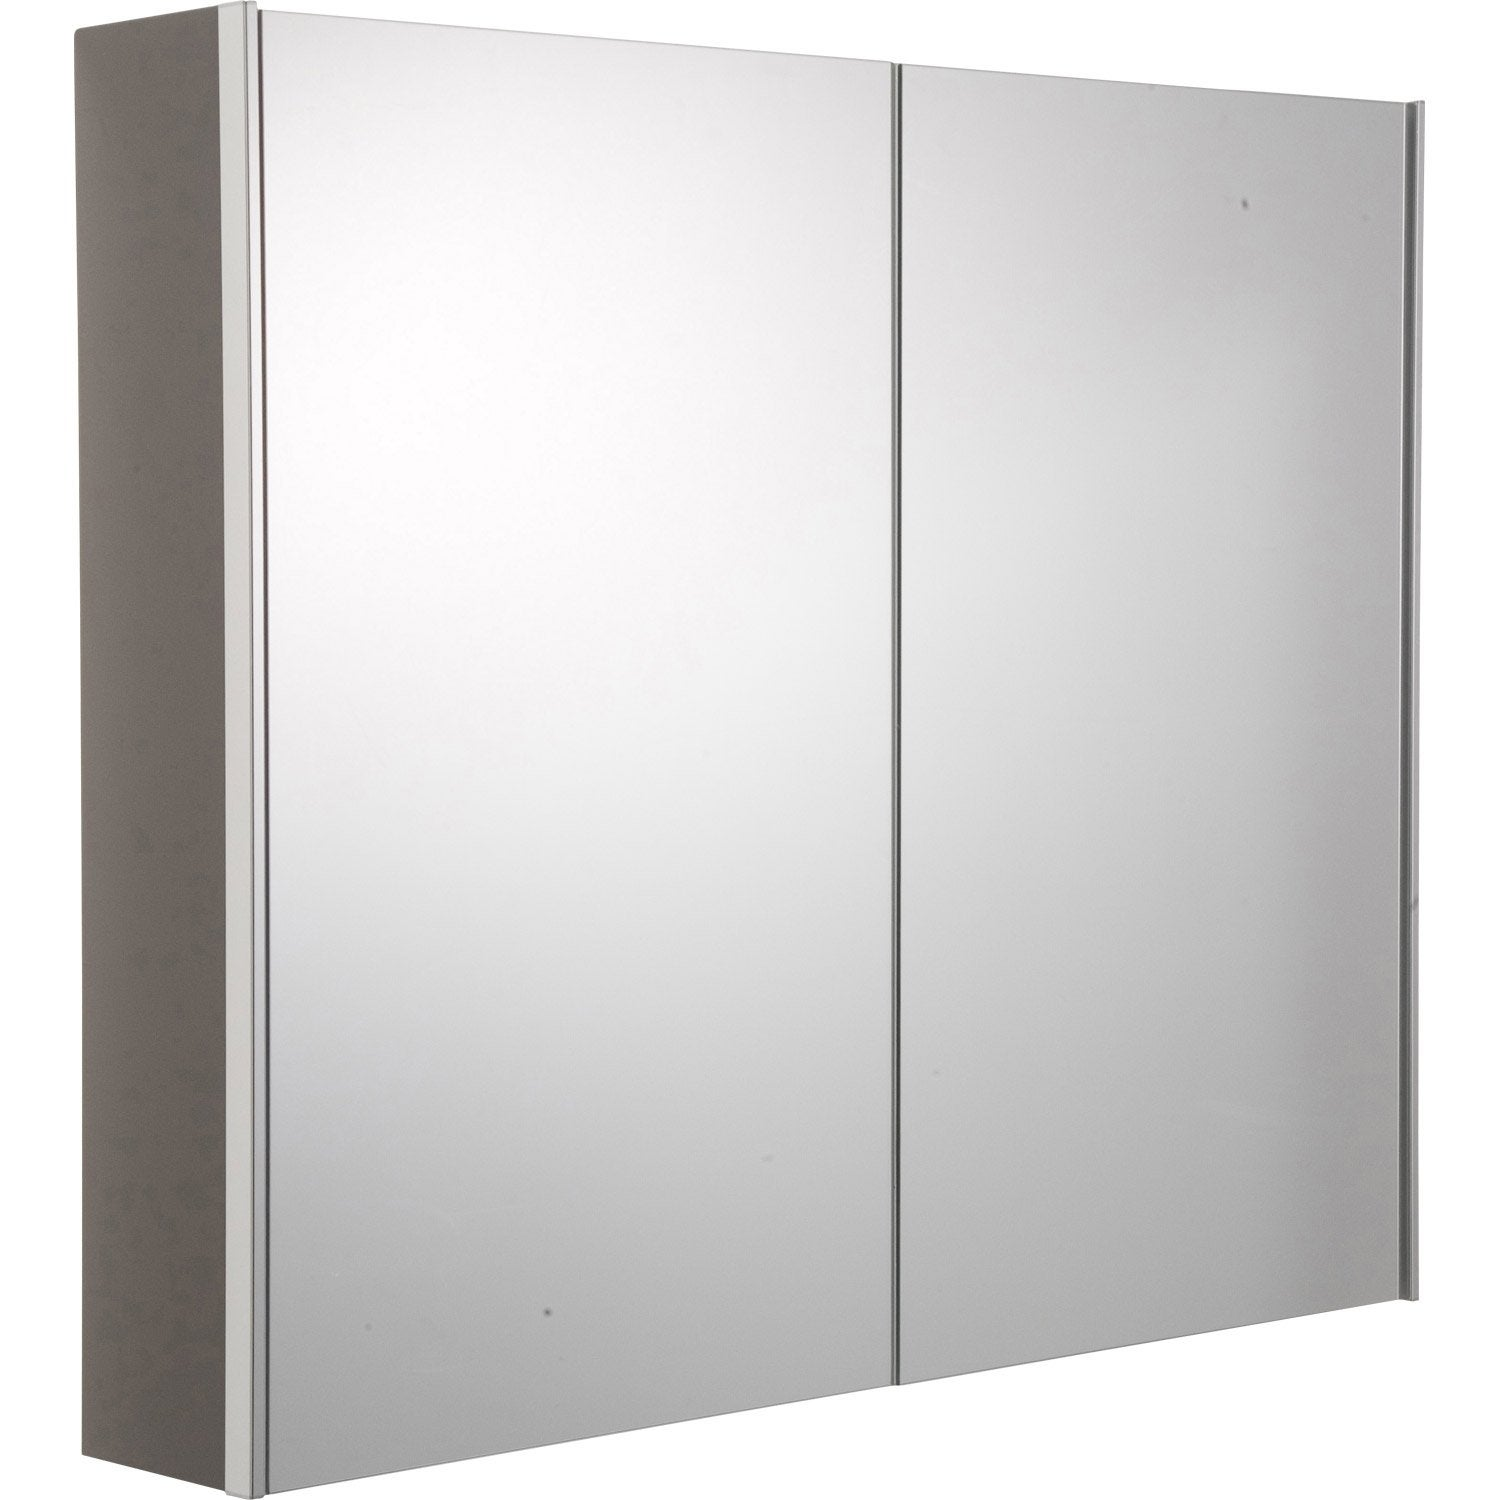 Armoire toilette conforama for Conforama armoire